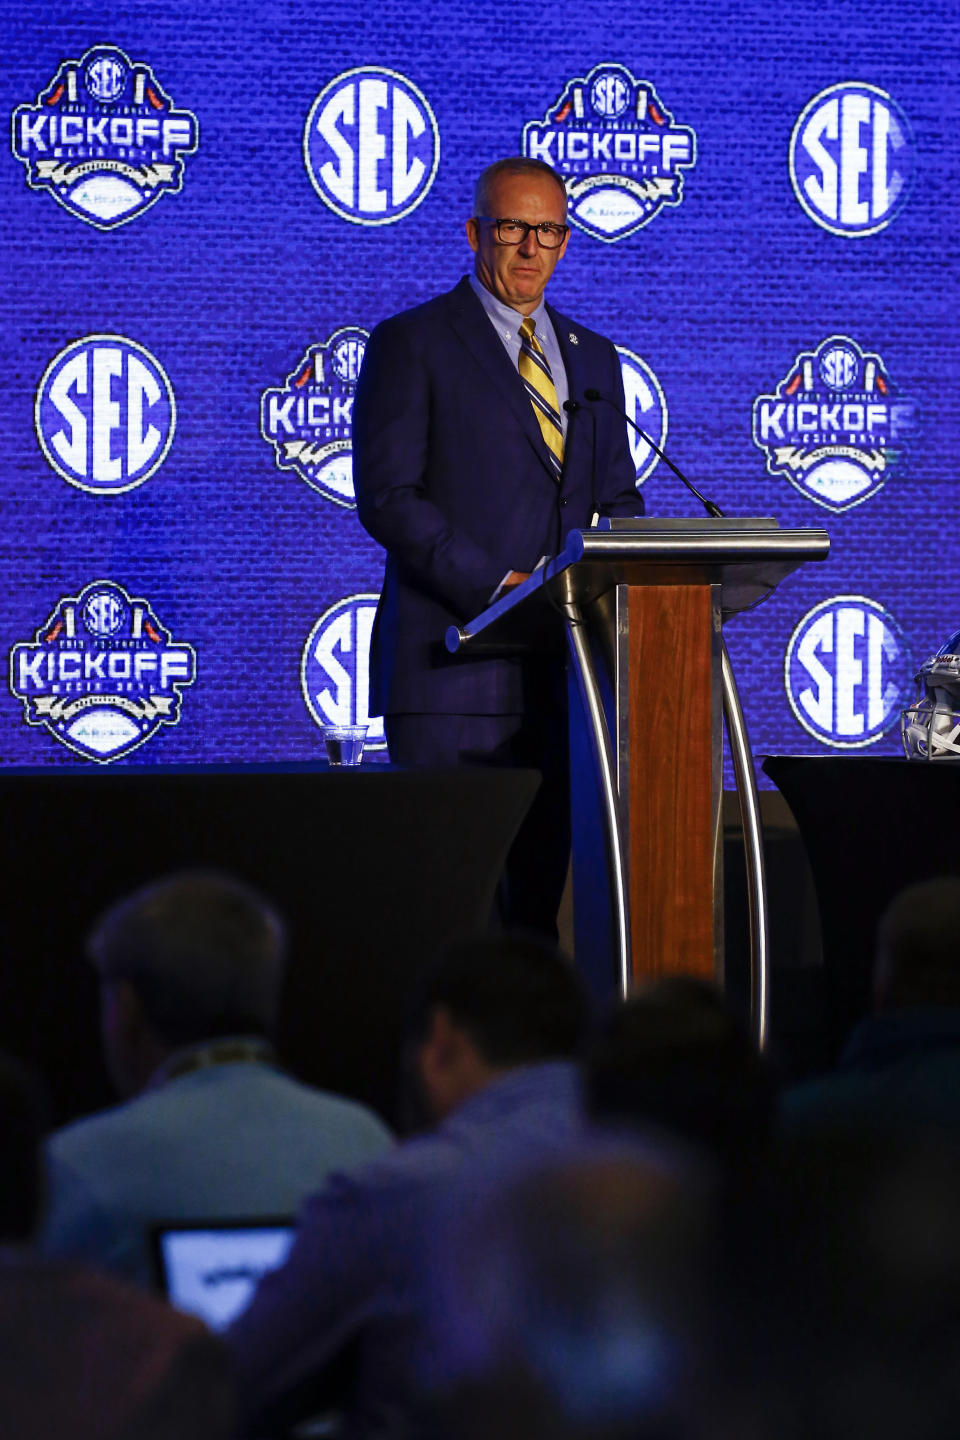 Southeastern Conference commissioner Greg Sankey speaks during the NCAA college football Southeastern Conference Media Days, Monday, July 15, 2019, in Hoover, Ala. (AP Photo/Butch Dill)